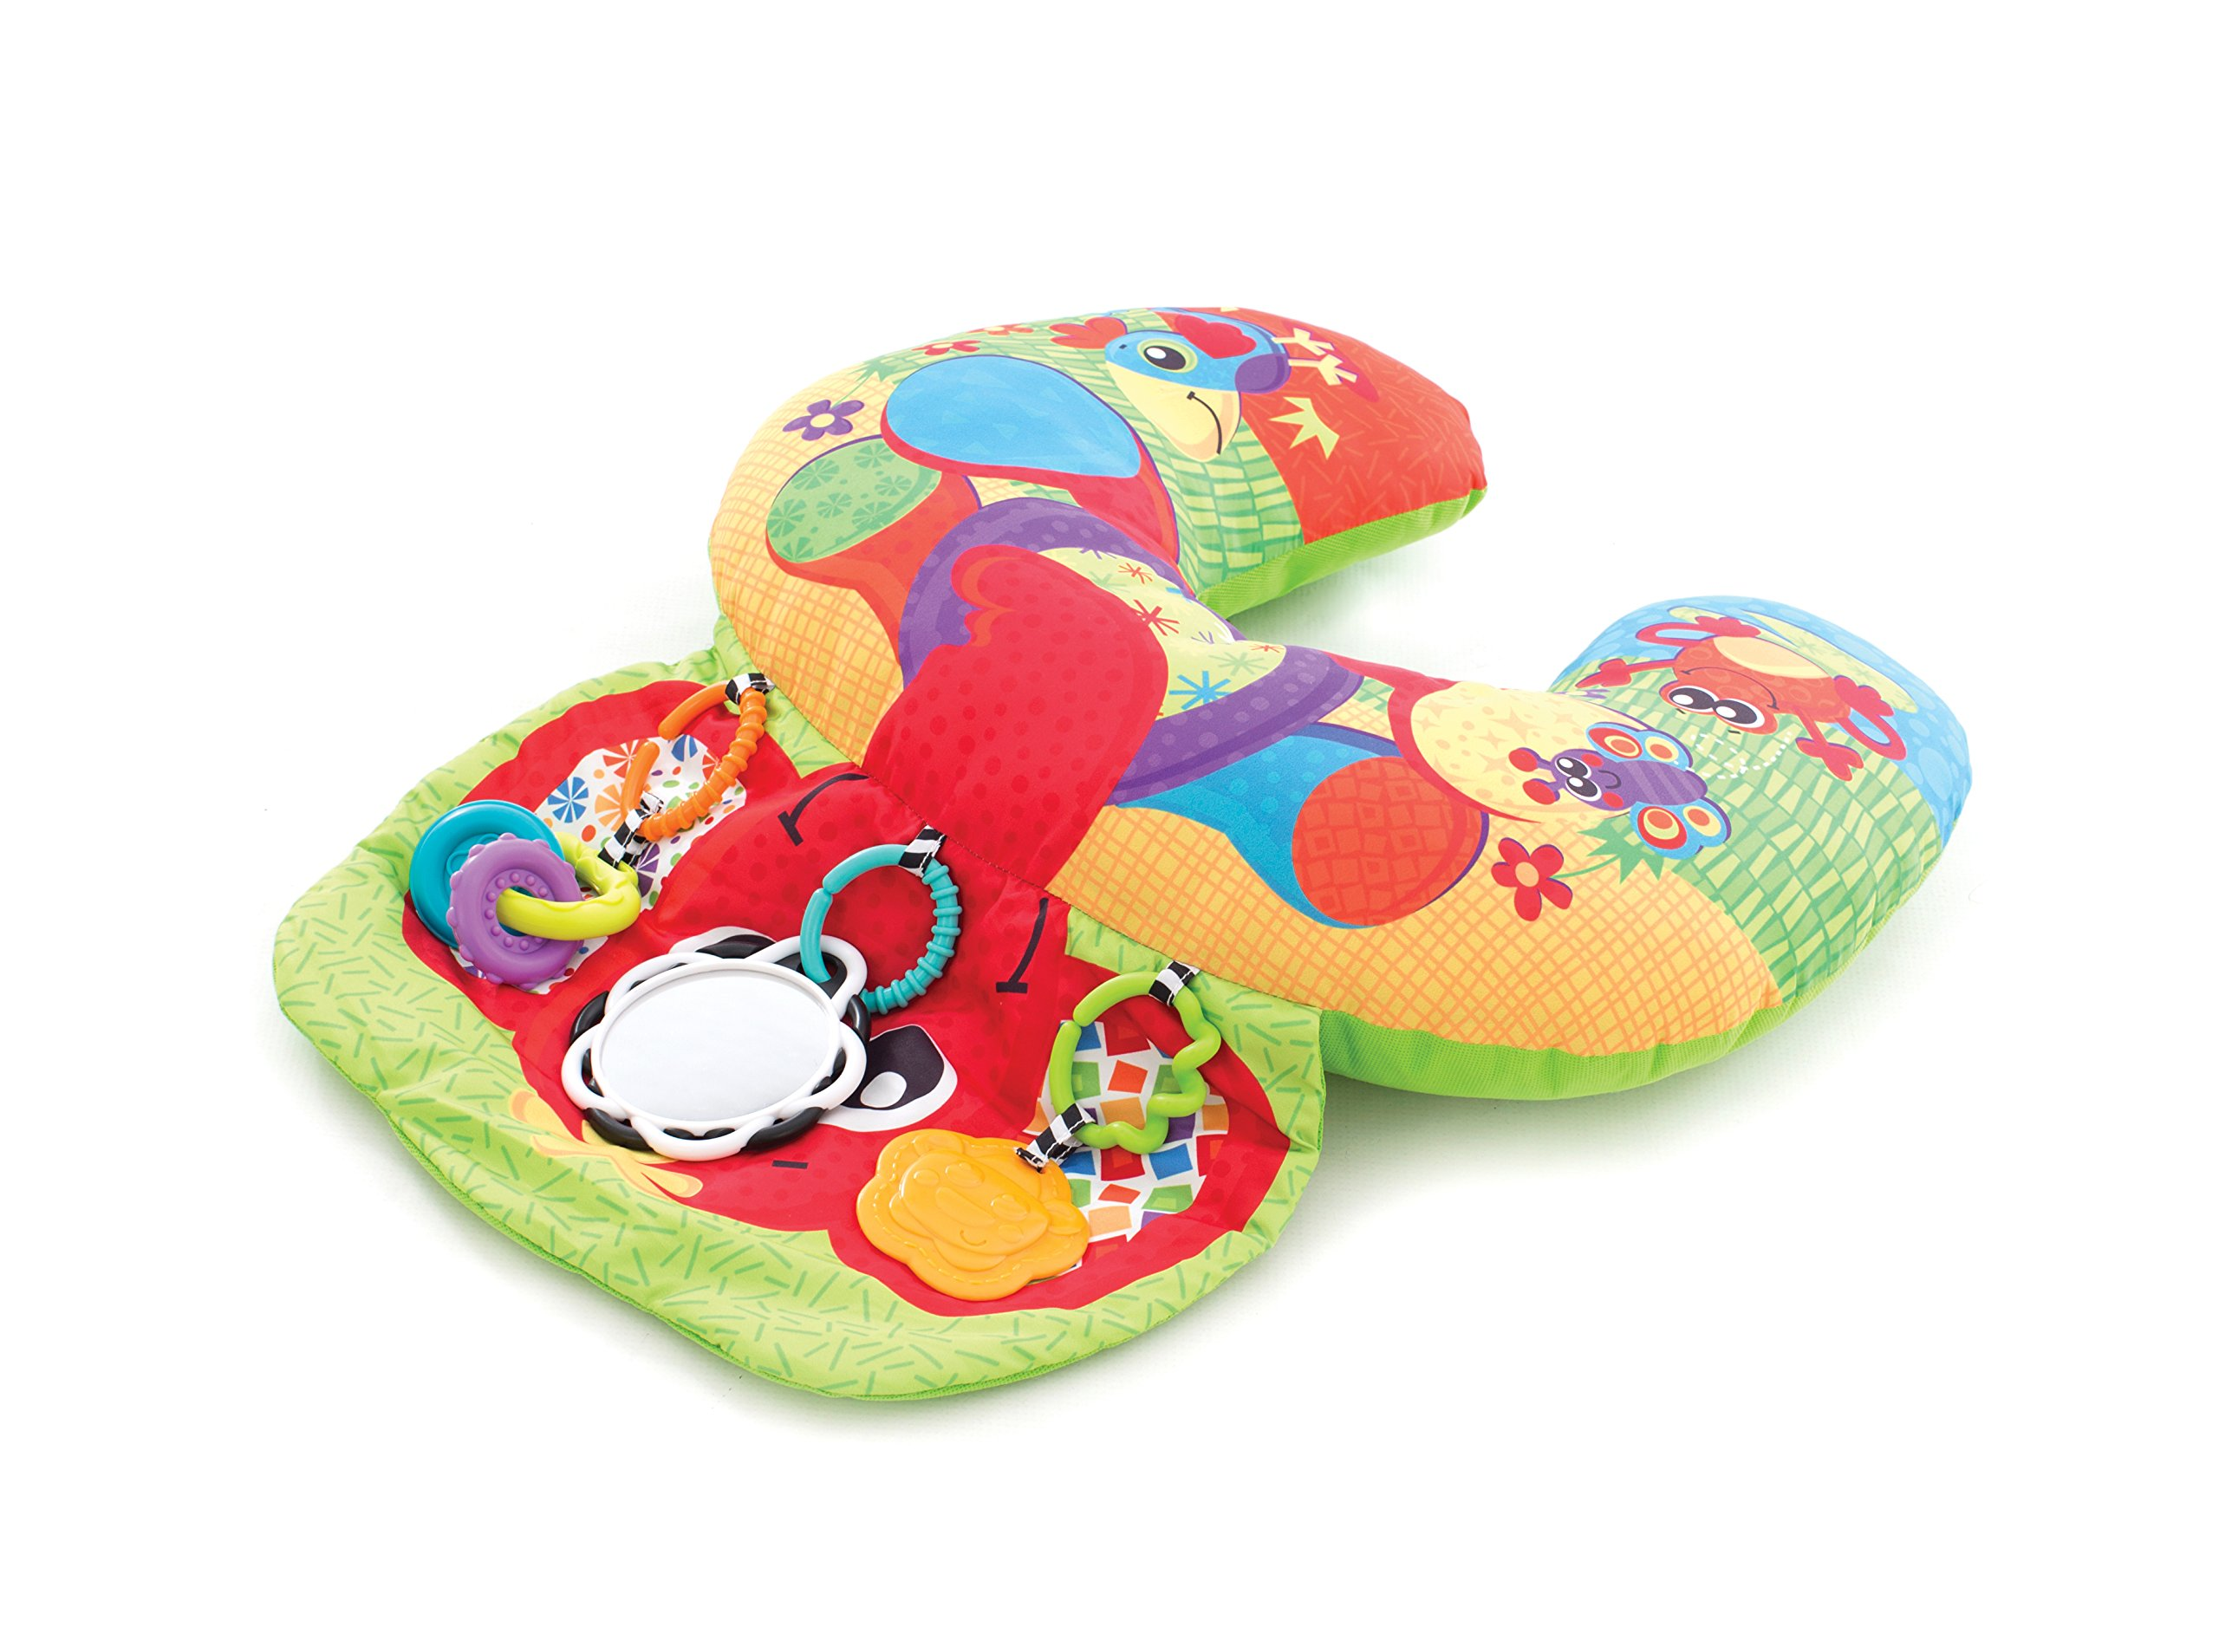 Playgro Elephant Hugs Activity Pillow for baby infant toddler children 0184570, Playgro is Encouraging Imagination with STEM/STEM for a bright future - Great start for a world of learning